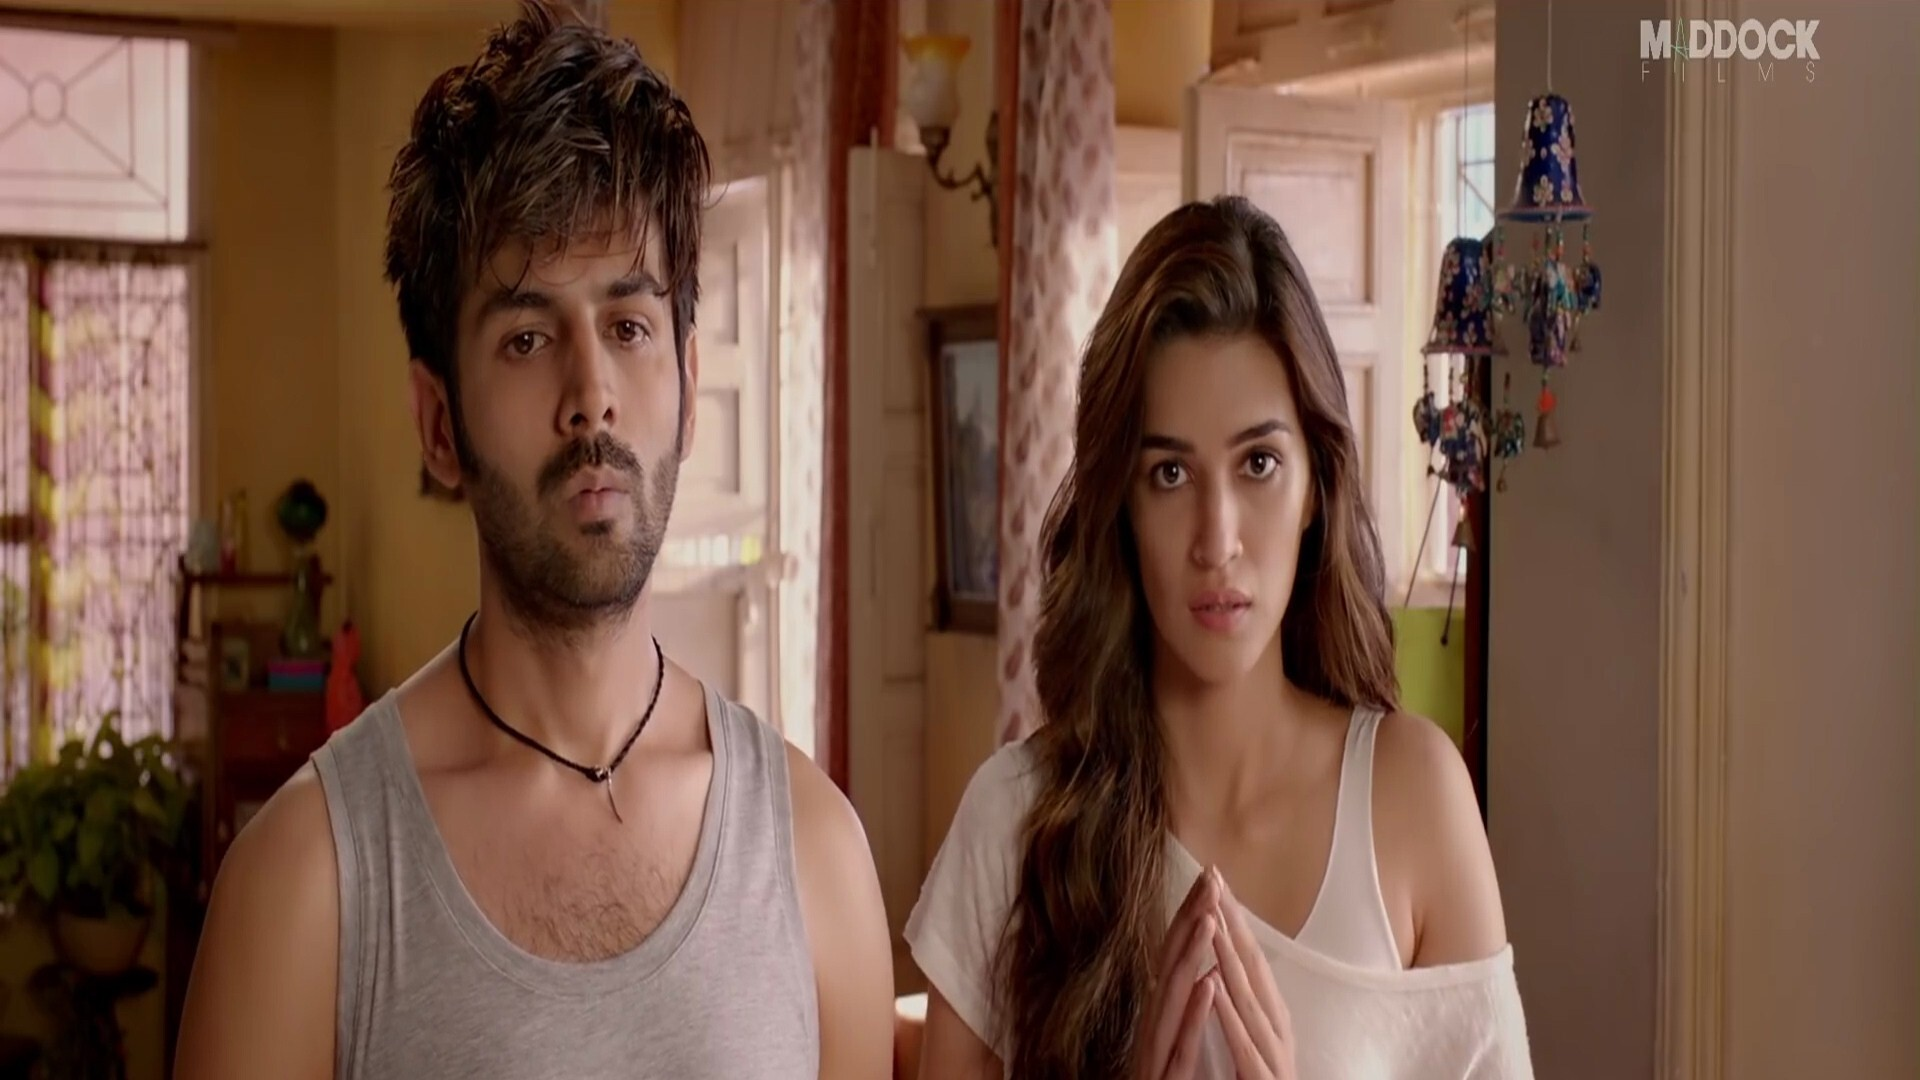 2019 Film Luka Chuppi Star Kriti Sanon With Kartik Aaryan Hd